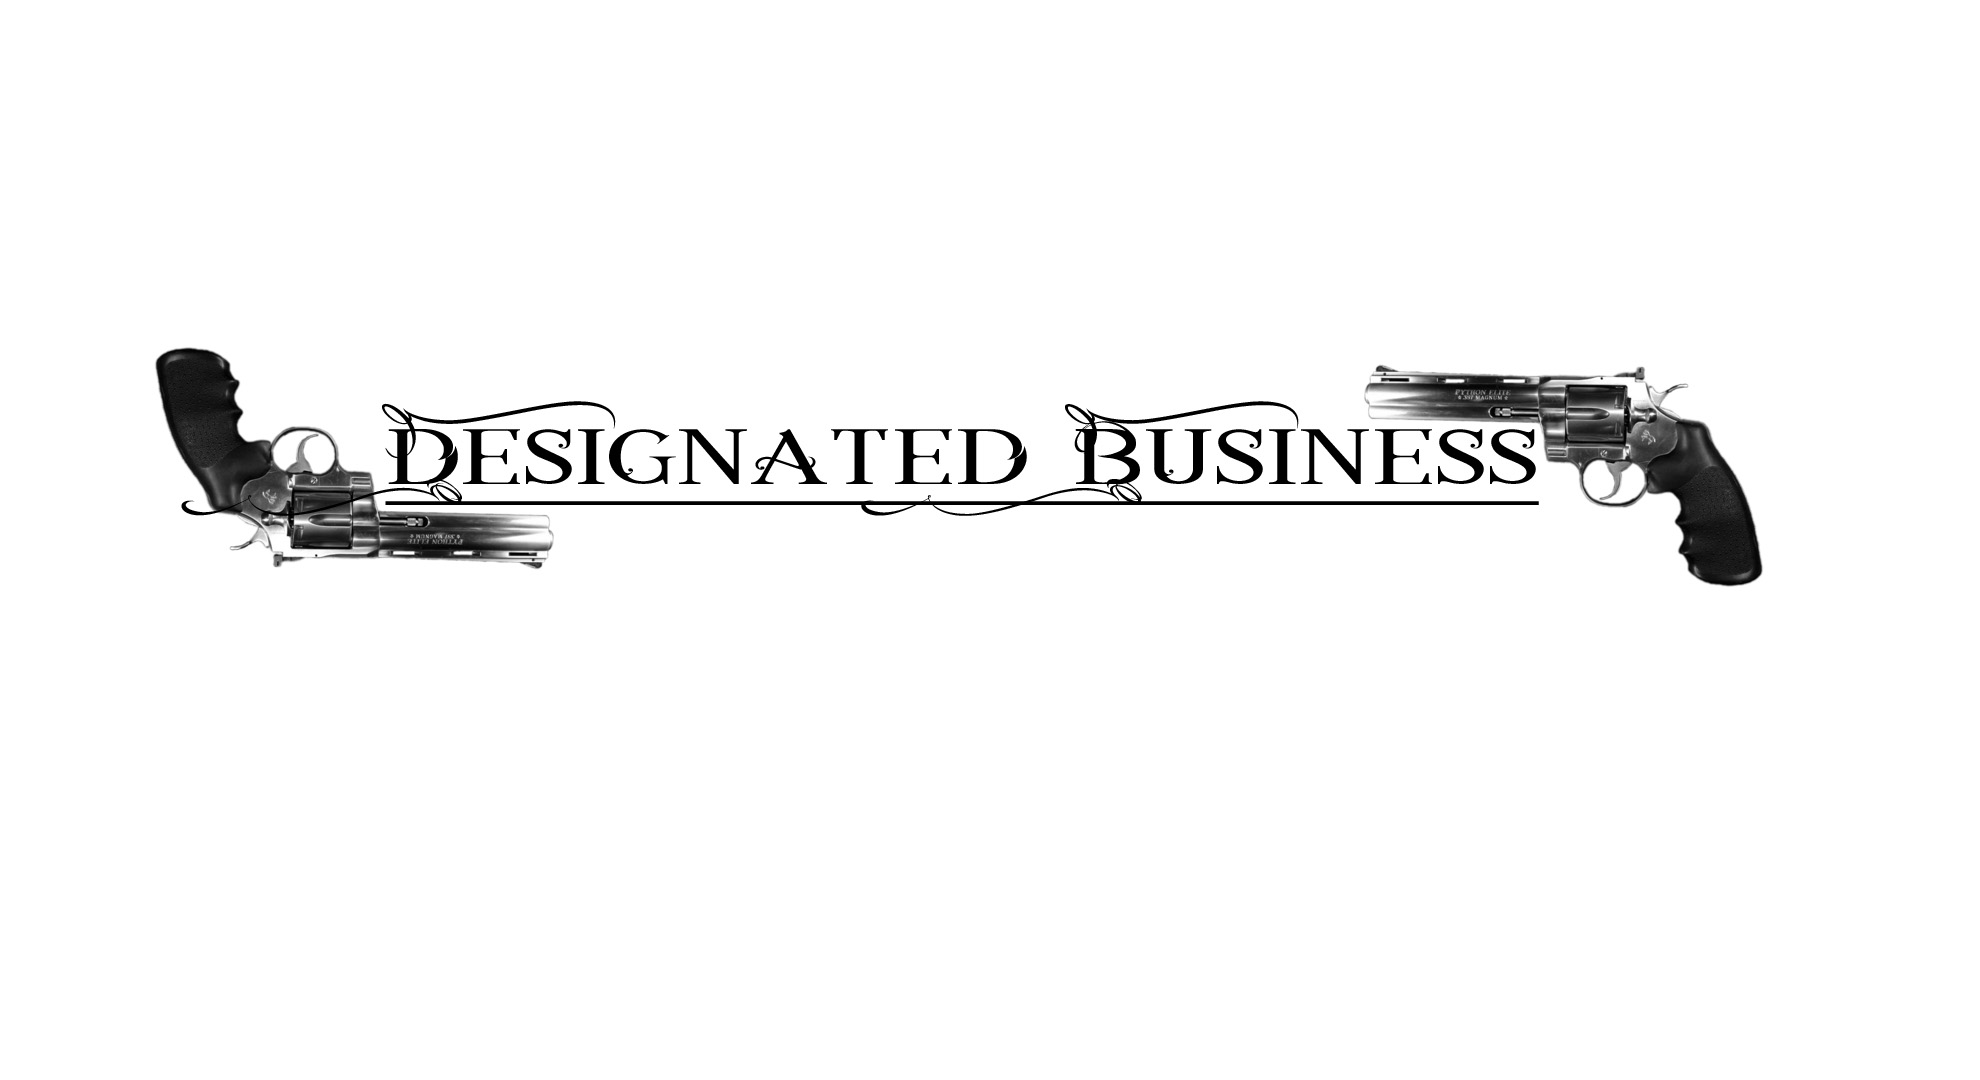 Designated Business